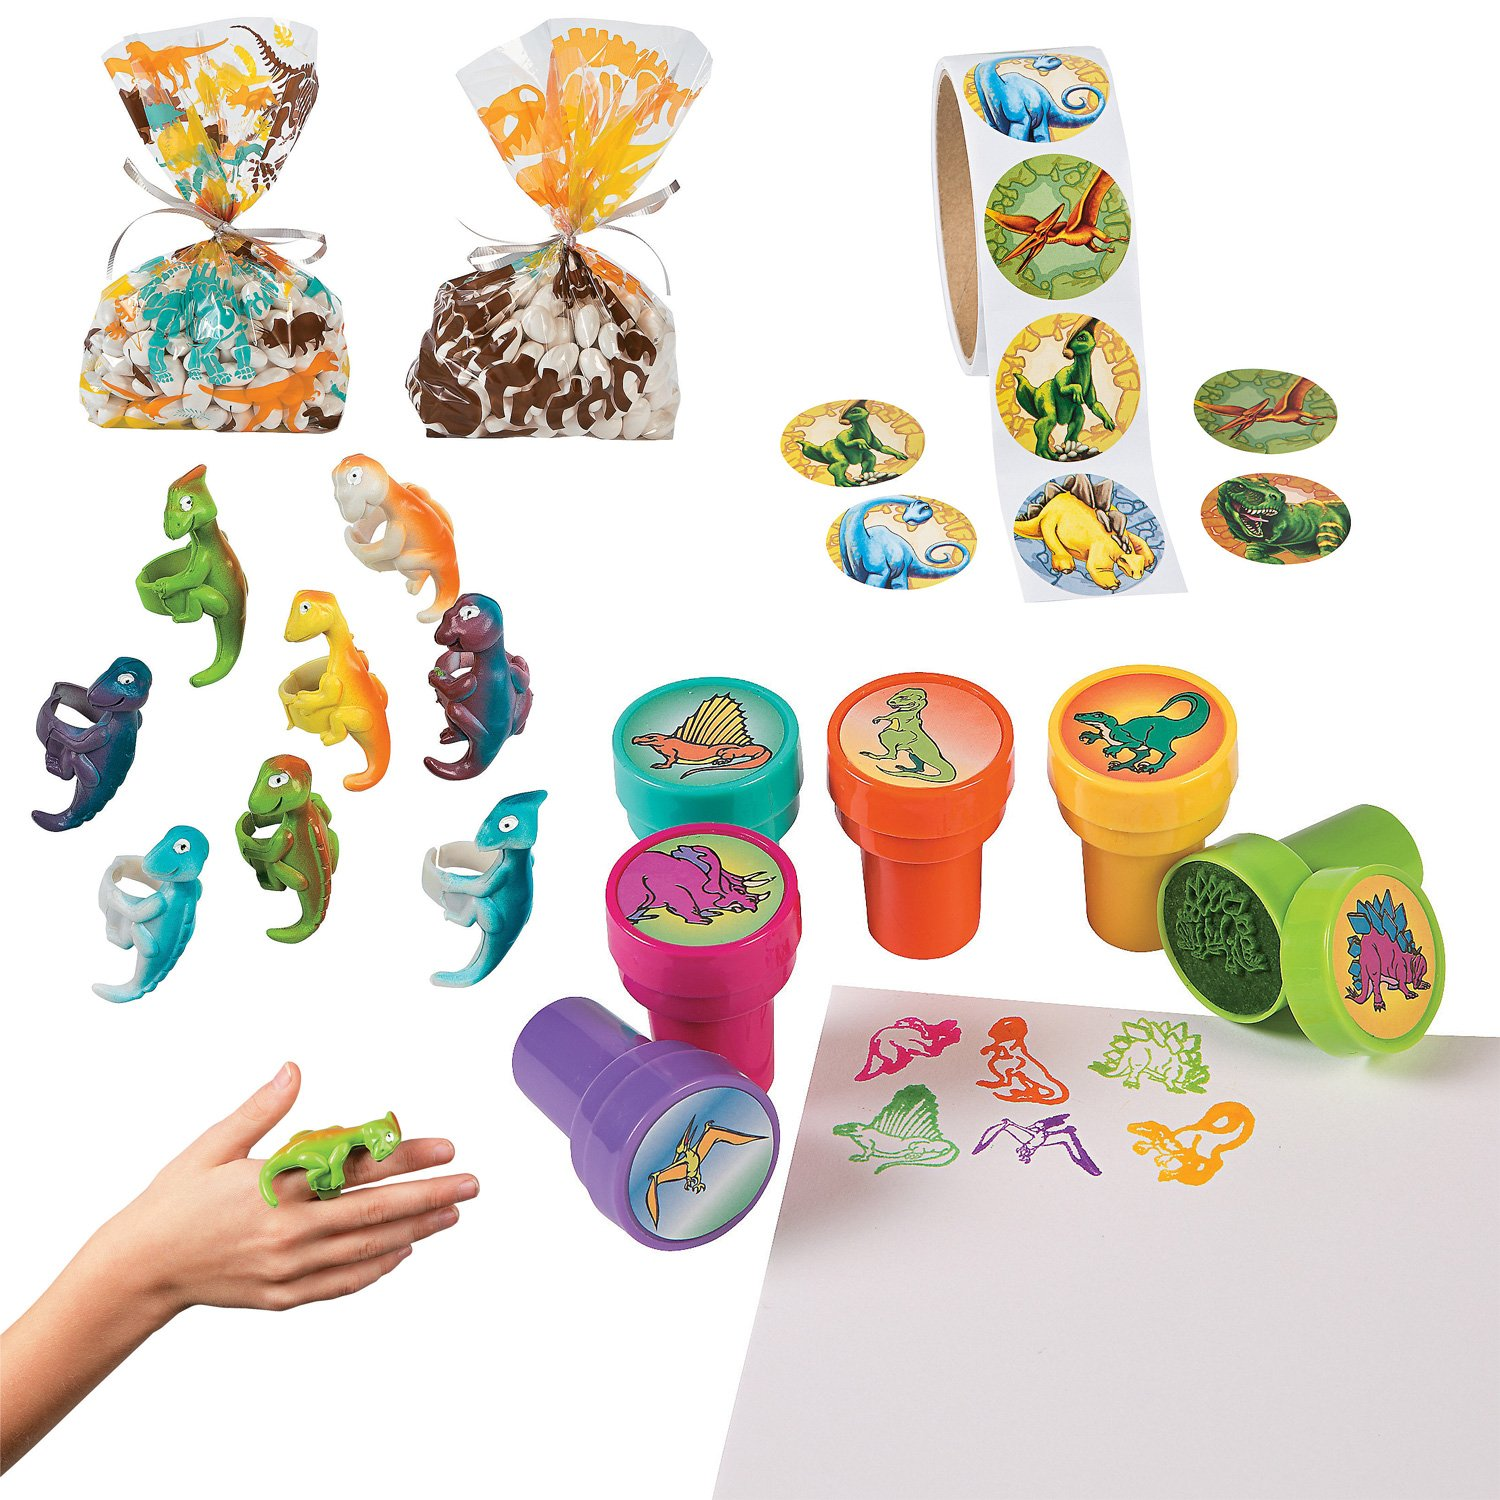 William & Douglas Dinosaur Party Bundle | Supplies Favors and Giveaways for Children's Dinosaur Birthday Party | Dinosaur Stickers, Cellophane Bags, Rings & Stampers by William & Douglas (Image #1)